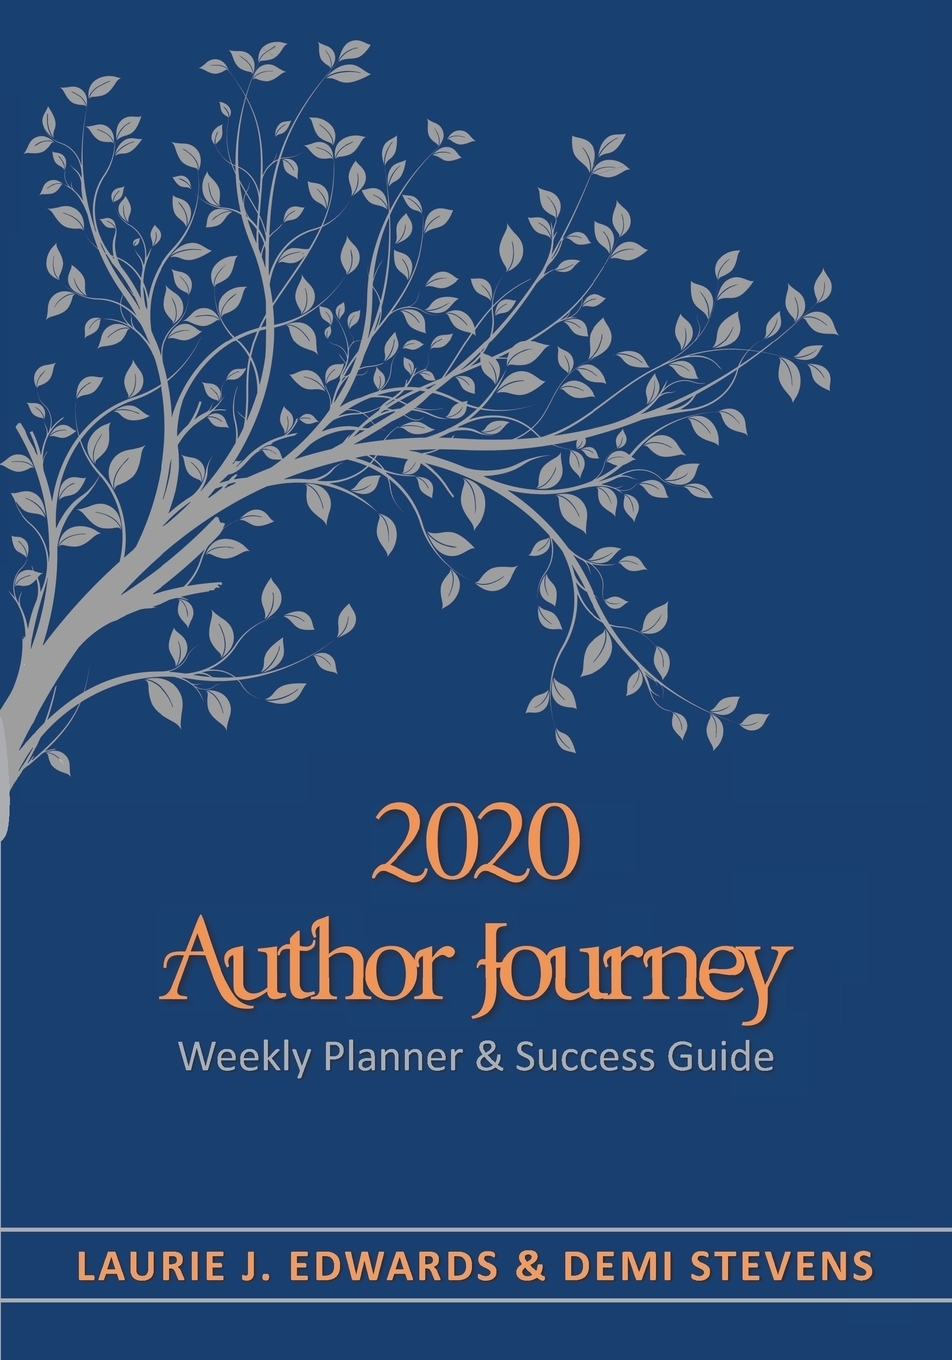 Laurie J Edwards, Demi Stevens. 2020 Author Journey. Weekly Planner & Success Guide